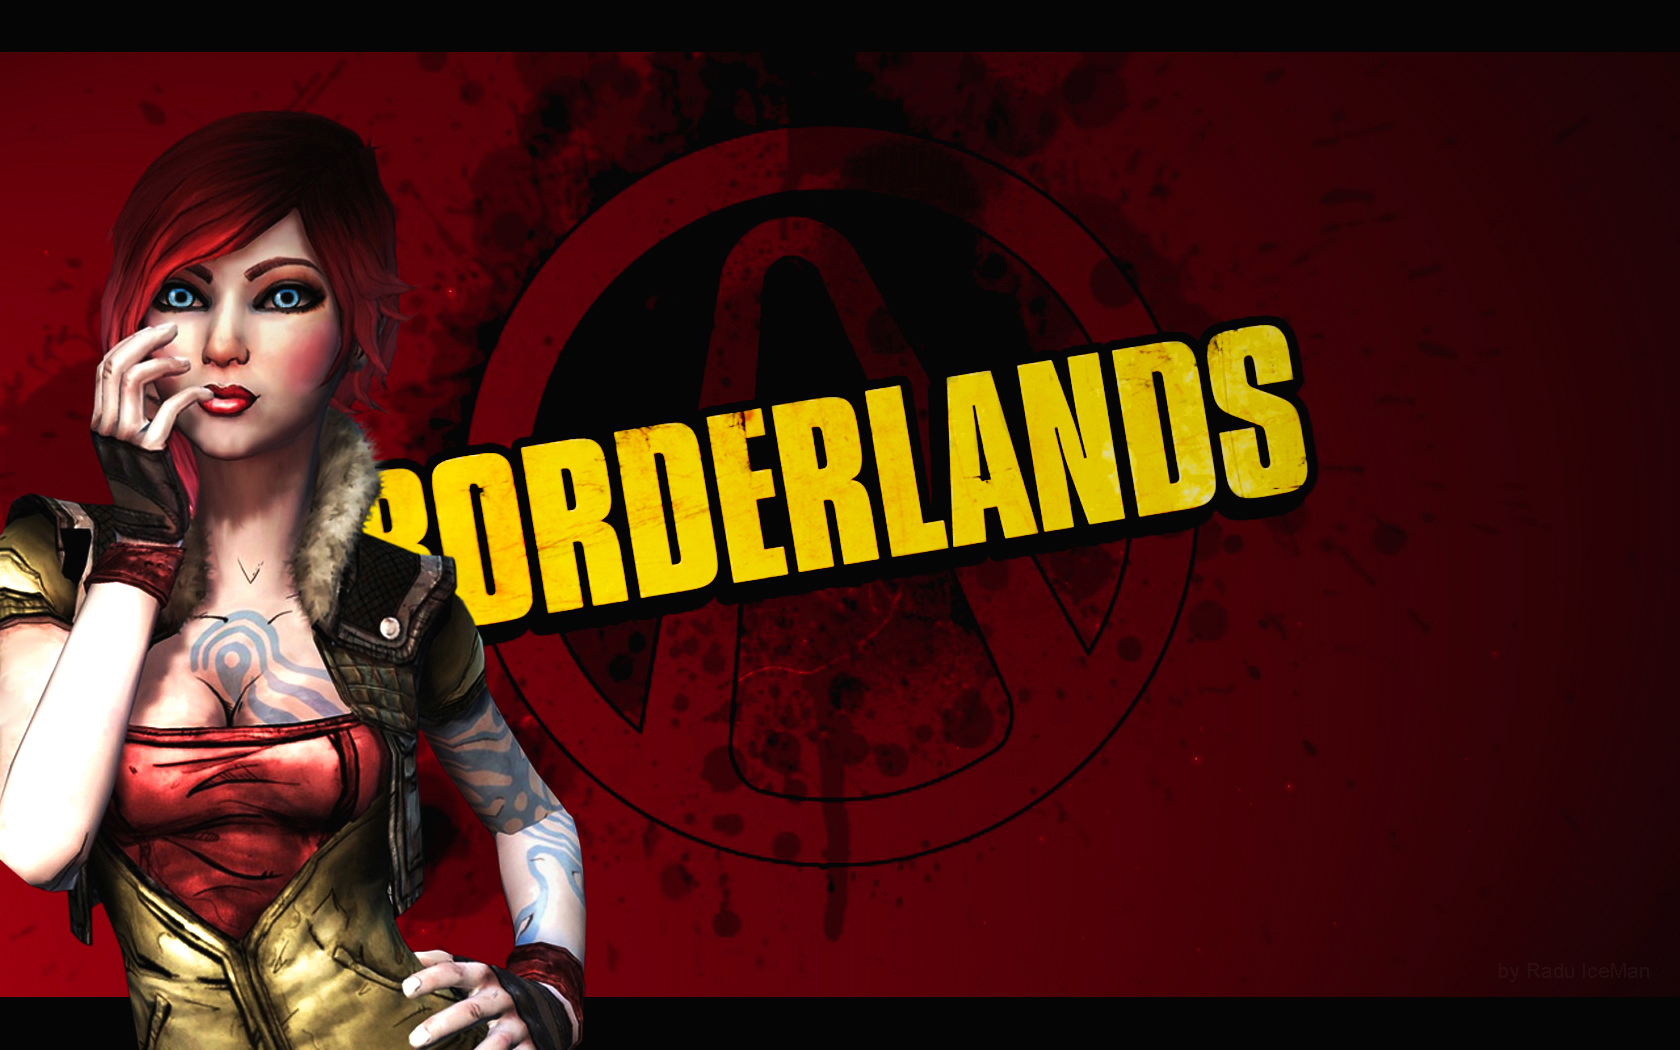 Borderlands 2 Class Wallpaper: Borderlands Class Guide For Xbox 360, PS3, PC